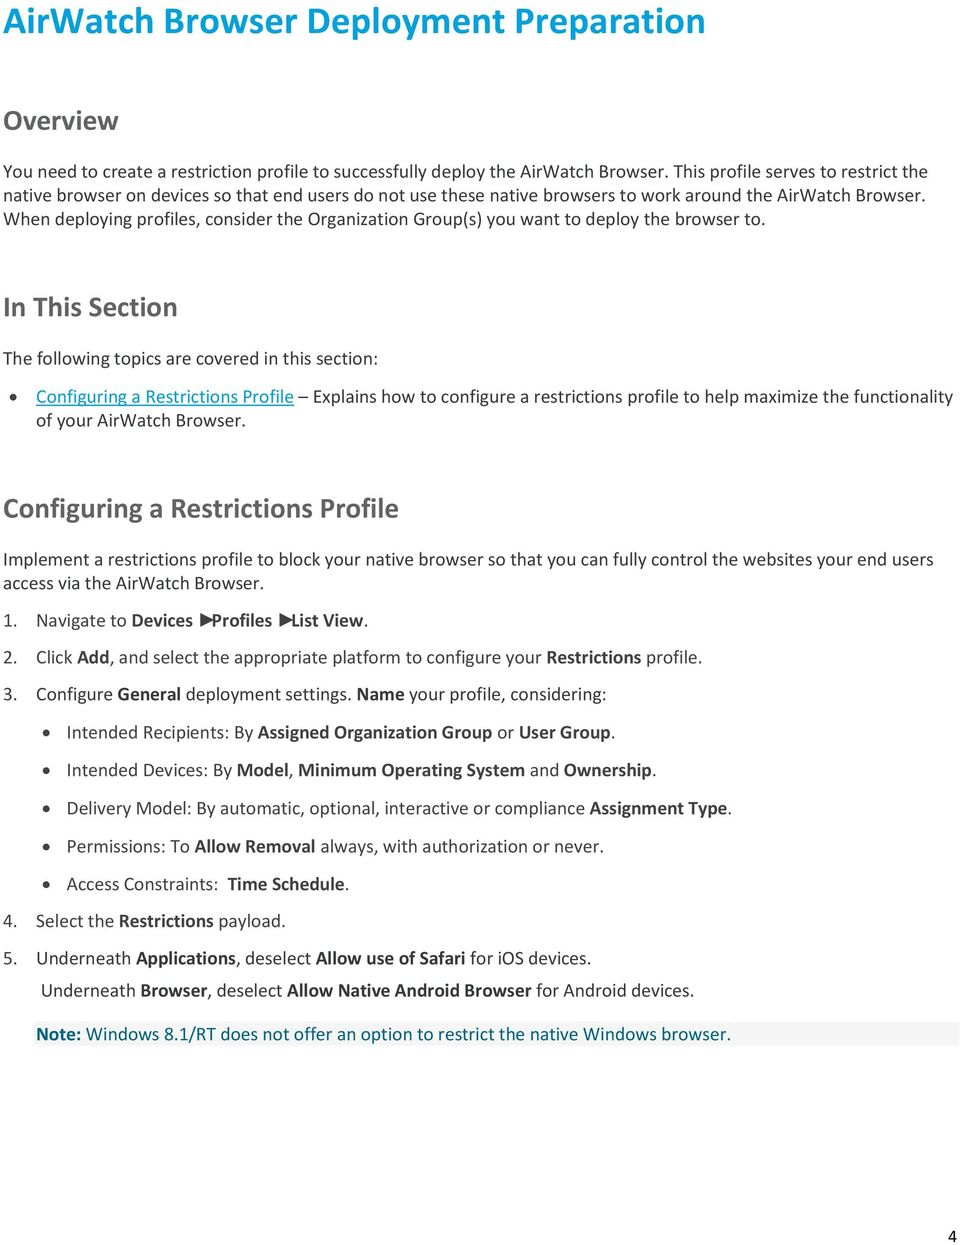 Introduction to the AirWatch Browser Guide - PDF